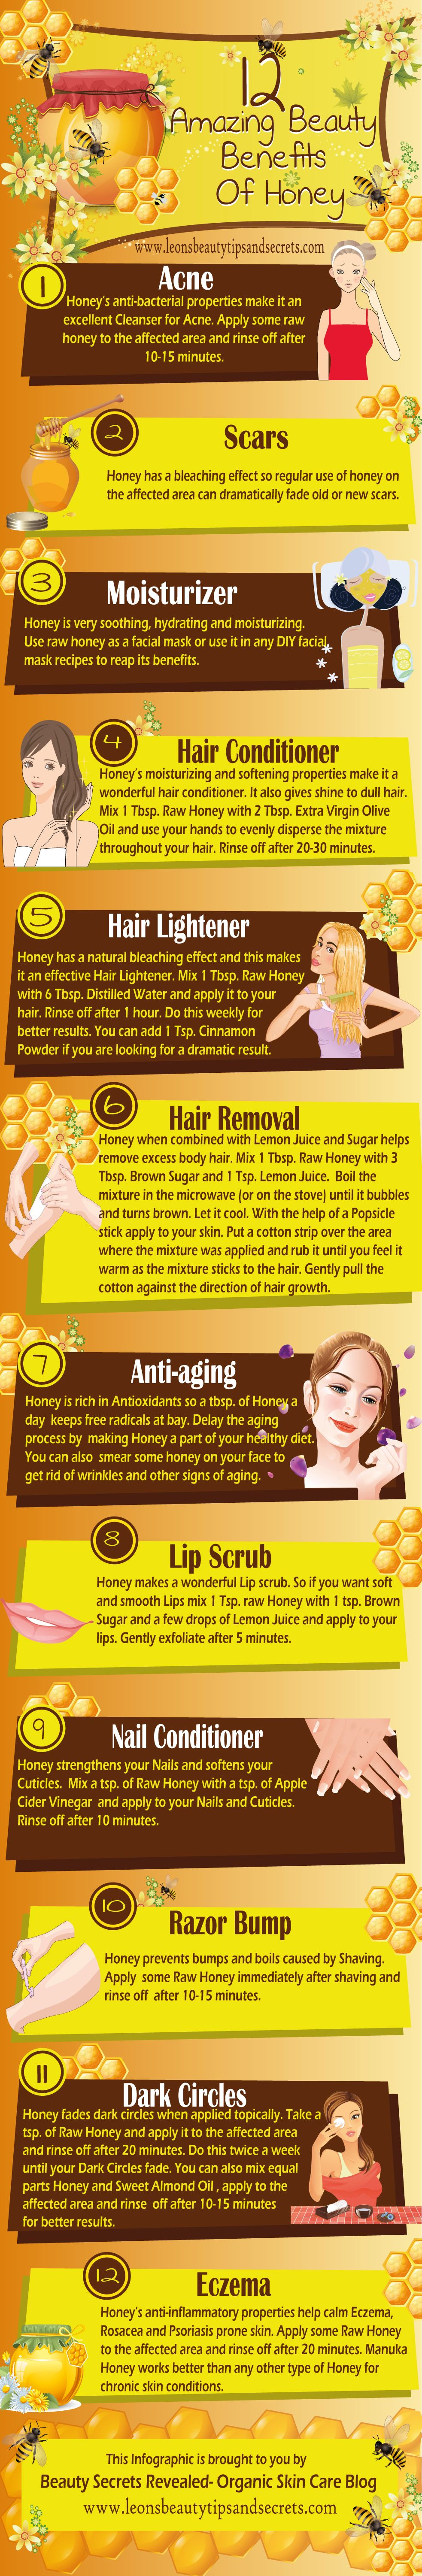 Here's How Honey Enhances Your Beauty - Infographic